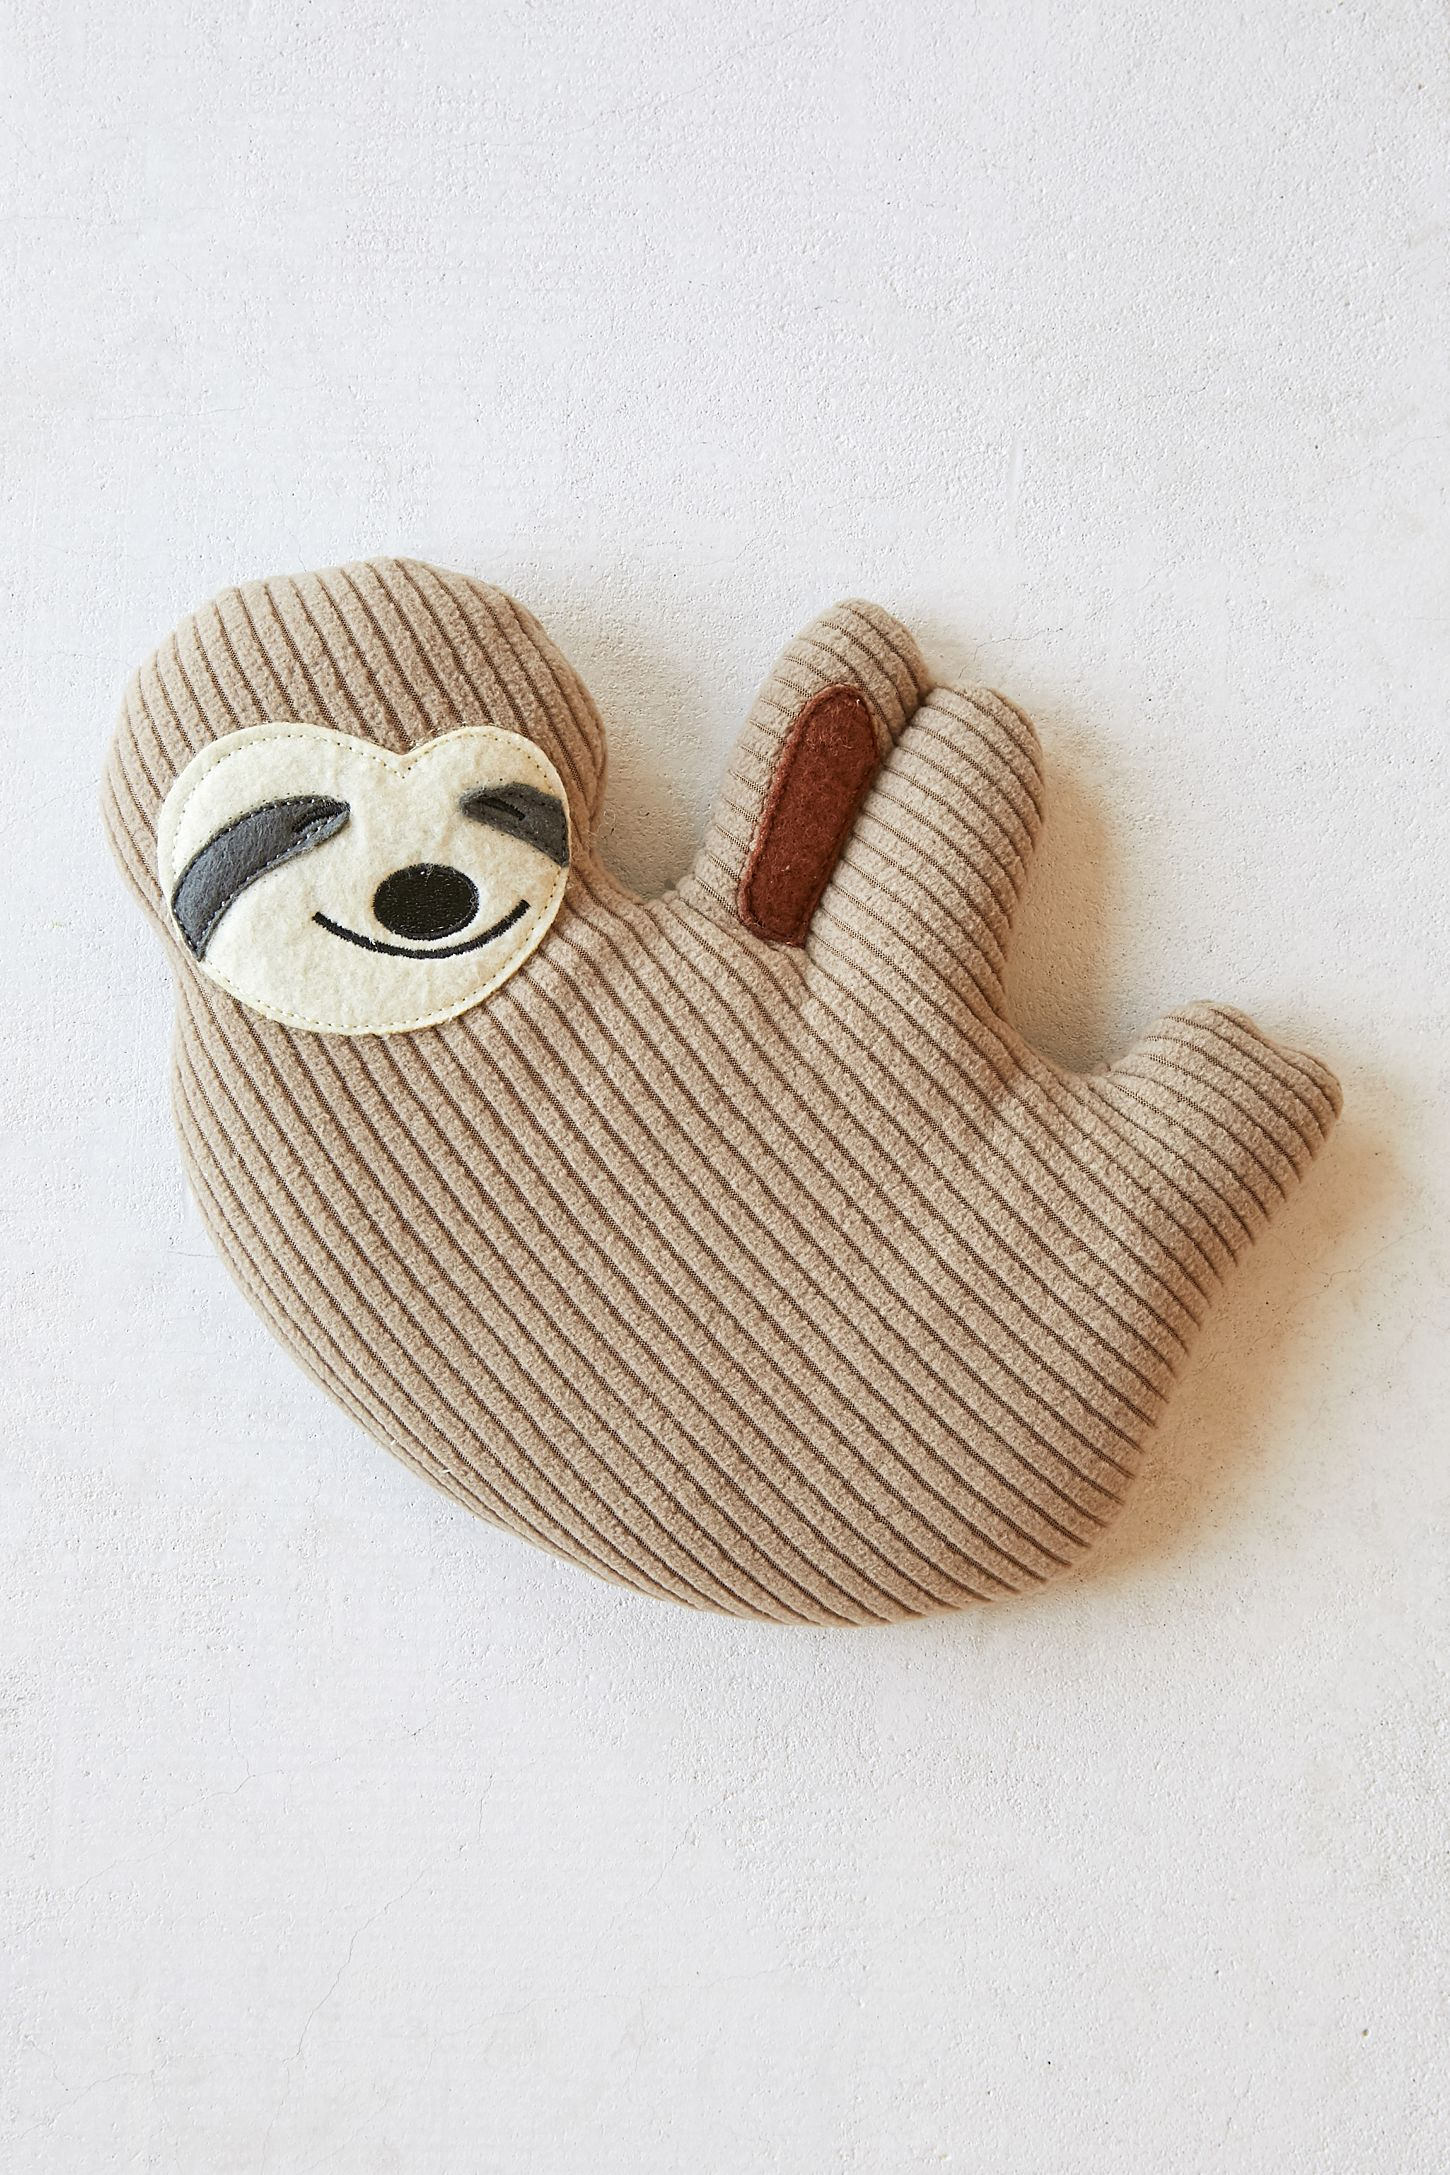 huggable sloth cooling heating pad urban outfitters